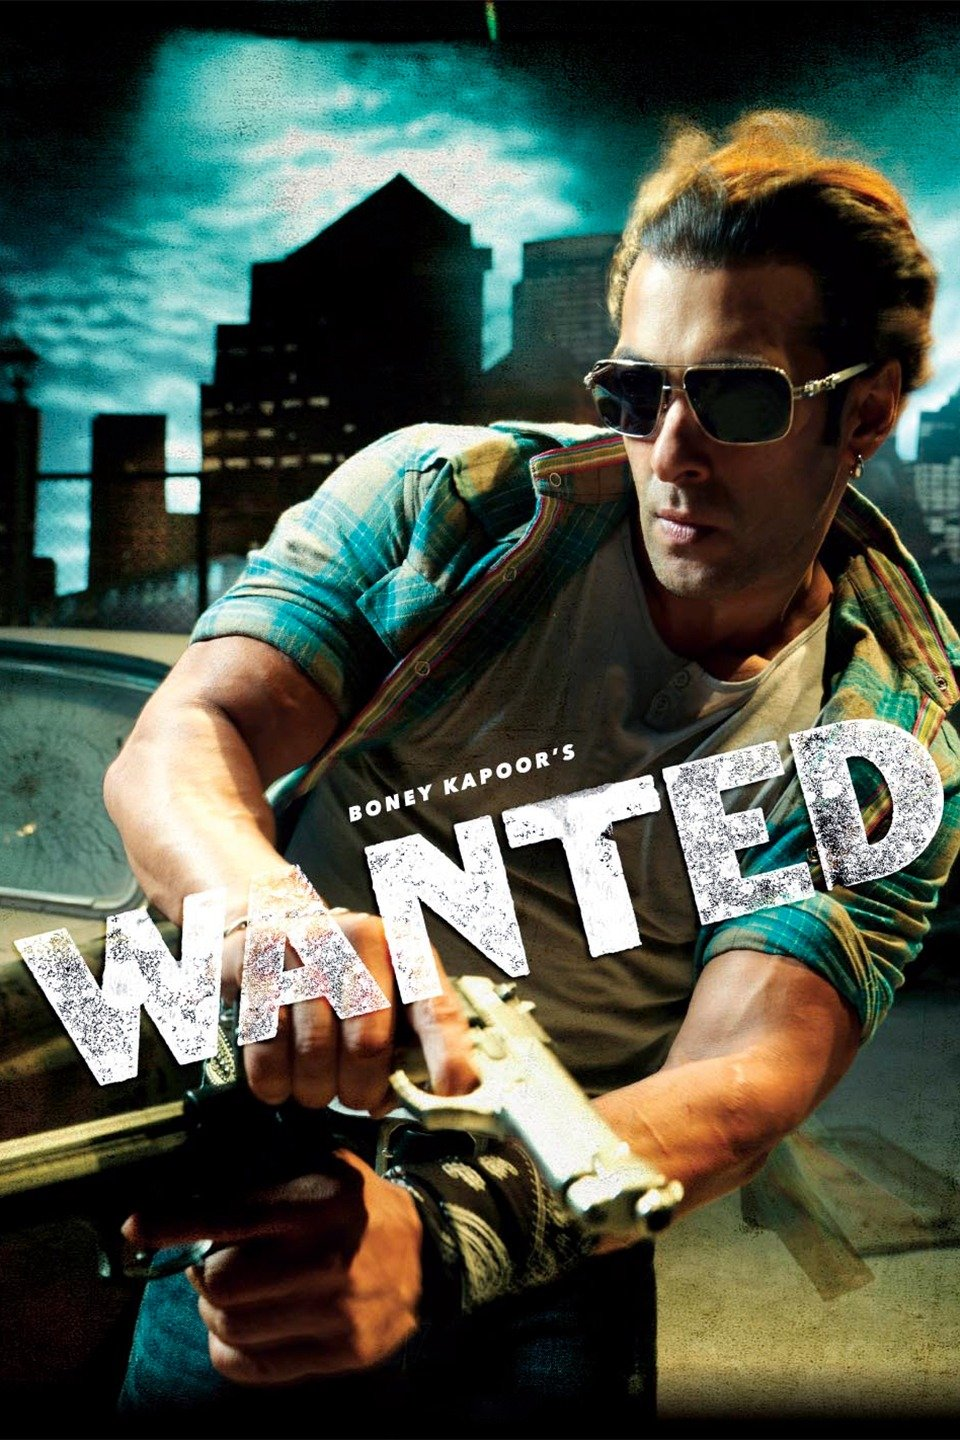 Wanted 2009 BRRip Hindi 720p x264 5.1 ESub